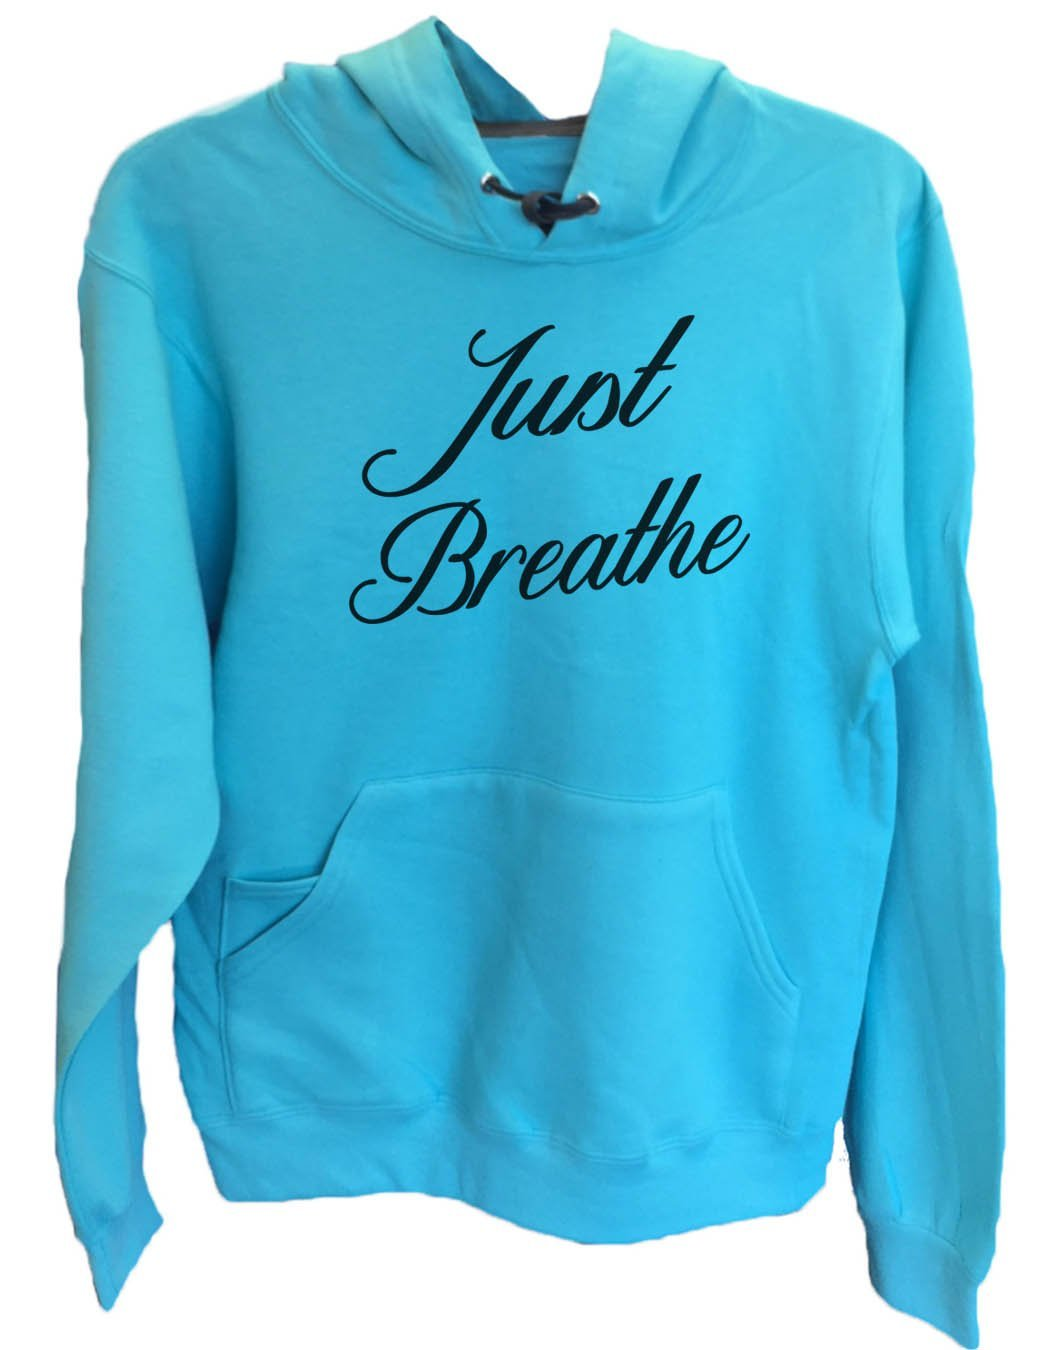 UNISEX HOODIE - Just Breathe - FUNNY MENS AND WOMENS HOODED SWEATSHIRTS - 2186 Funny Shirt Small / Turquoise